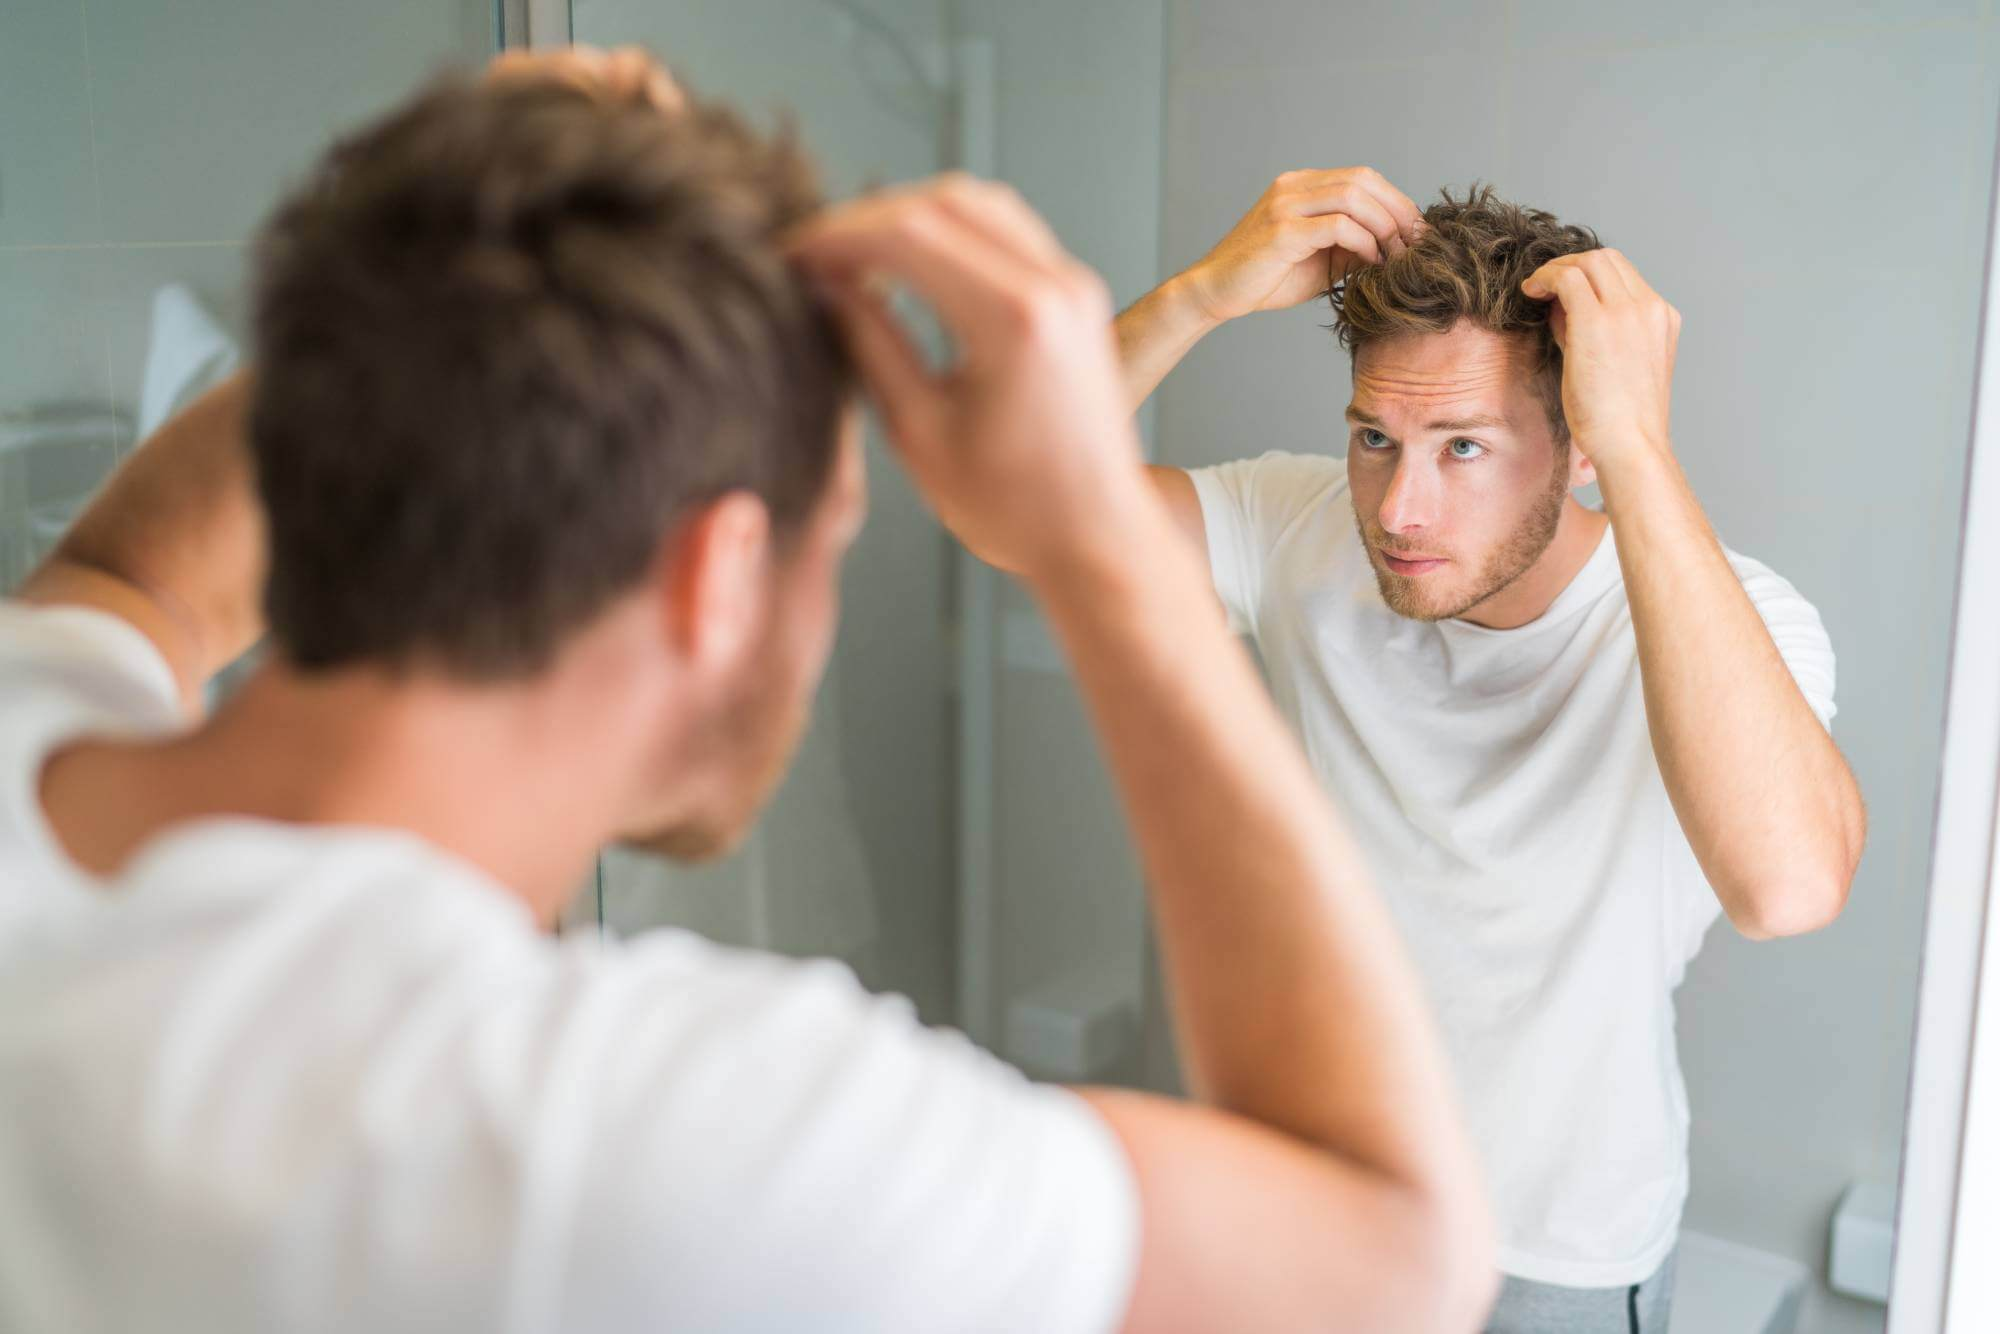 Dandruff: Does it Mean I'm Going to Lose My Hair?